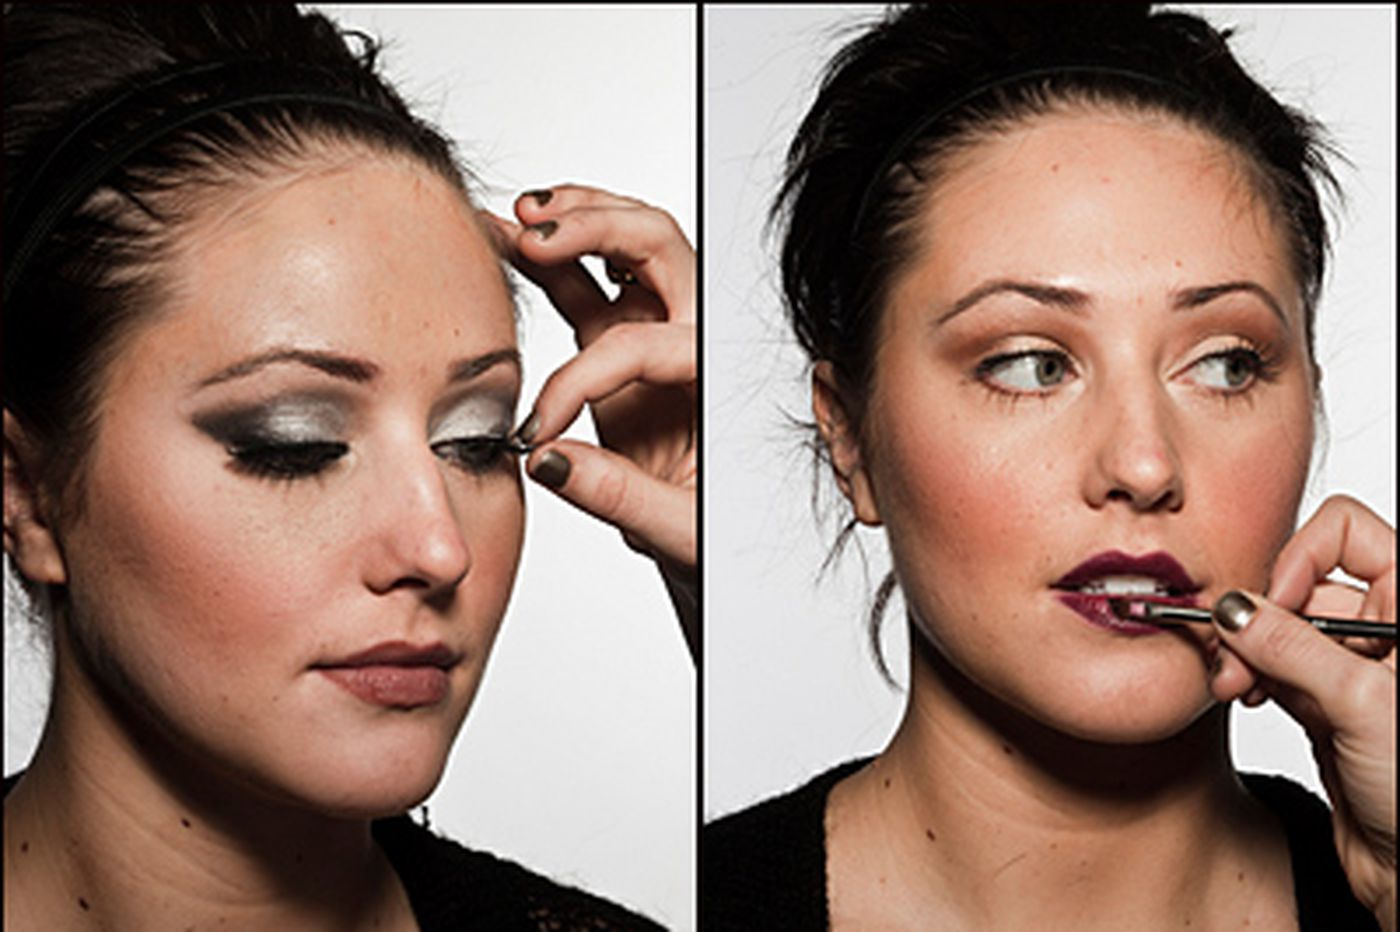 Party primped in under 10 minutes